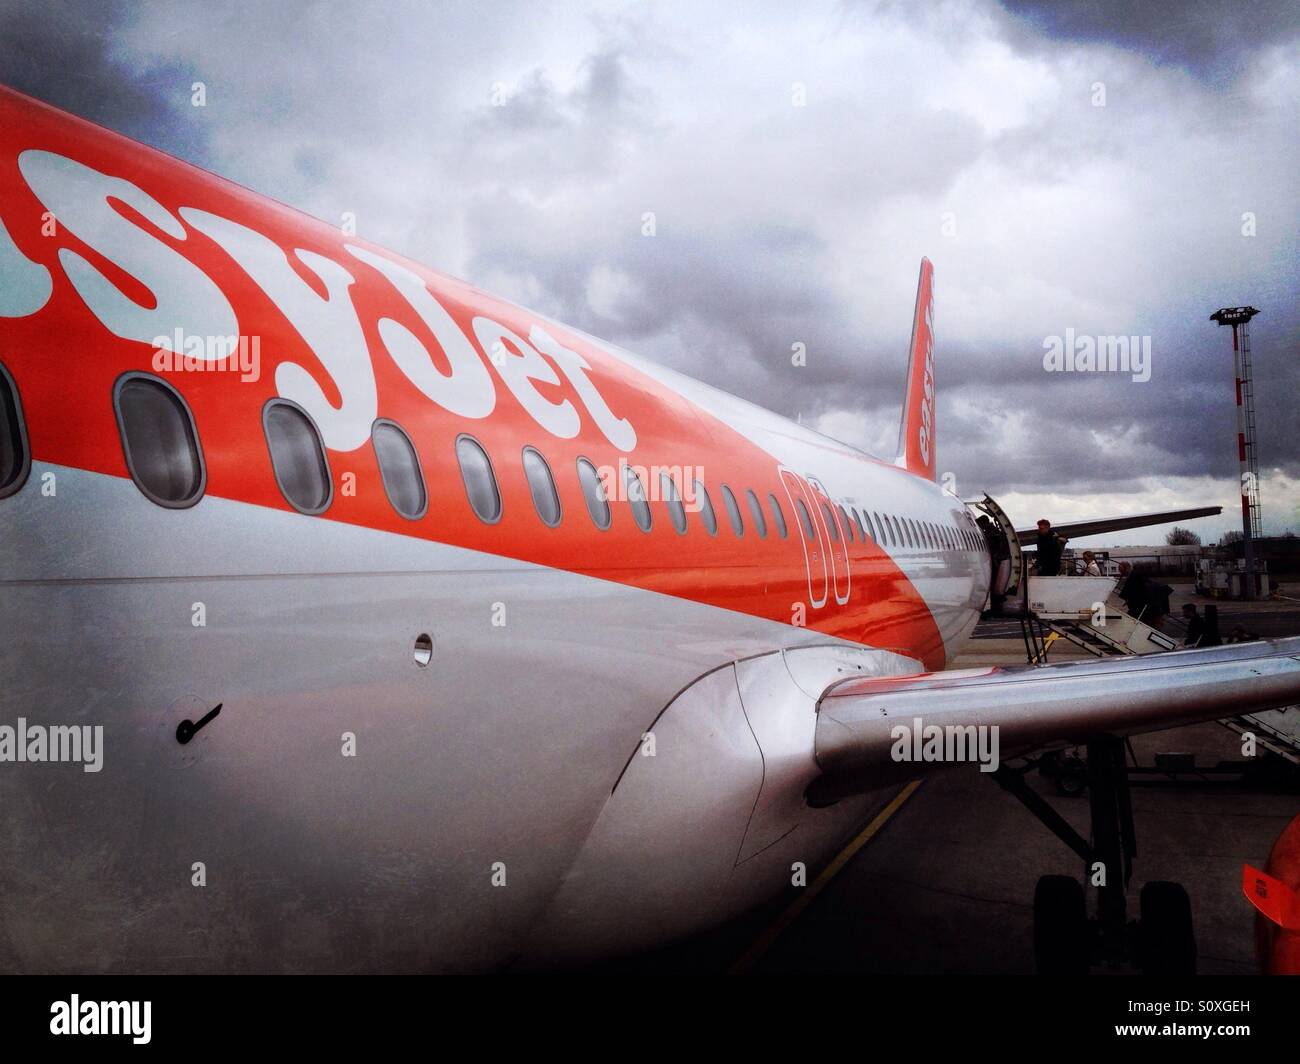 An Easyjet Airbus 319/320 at Schoenefeld Airport in Berlin, Germany - Stock Image